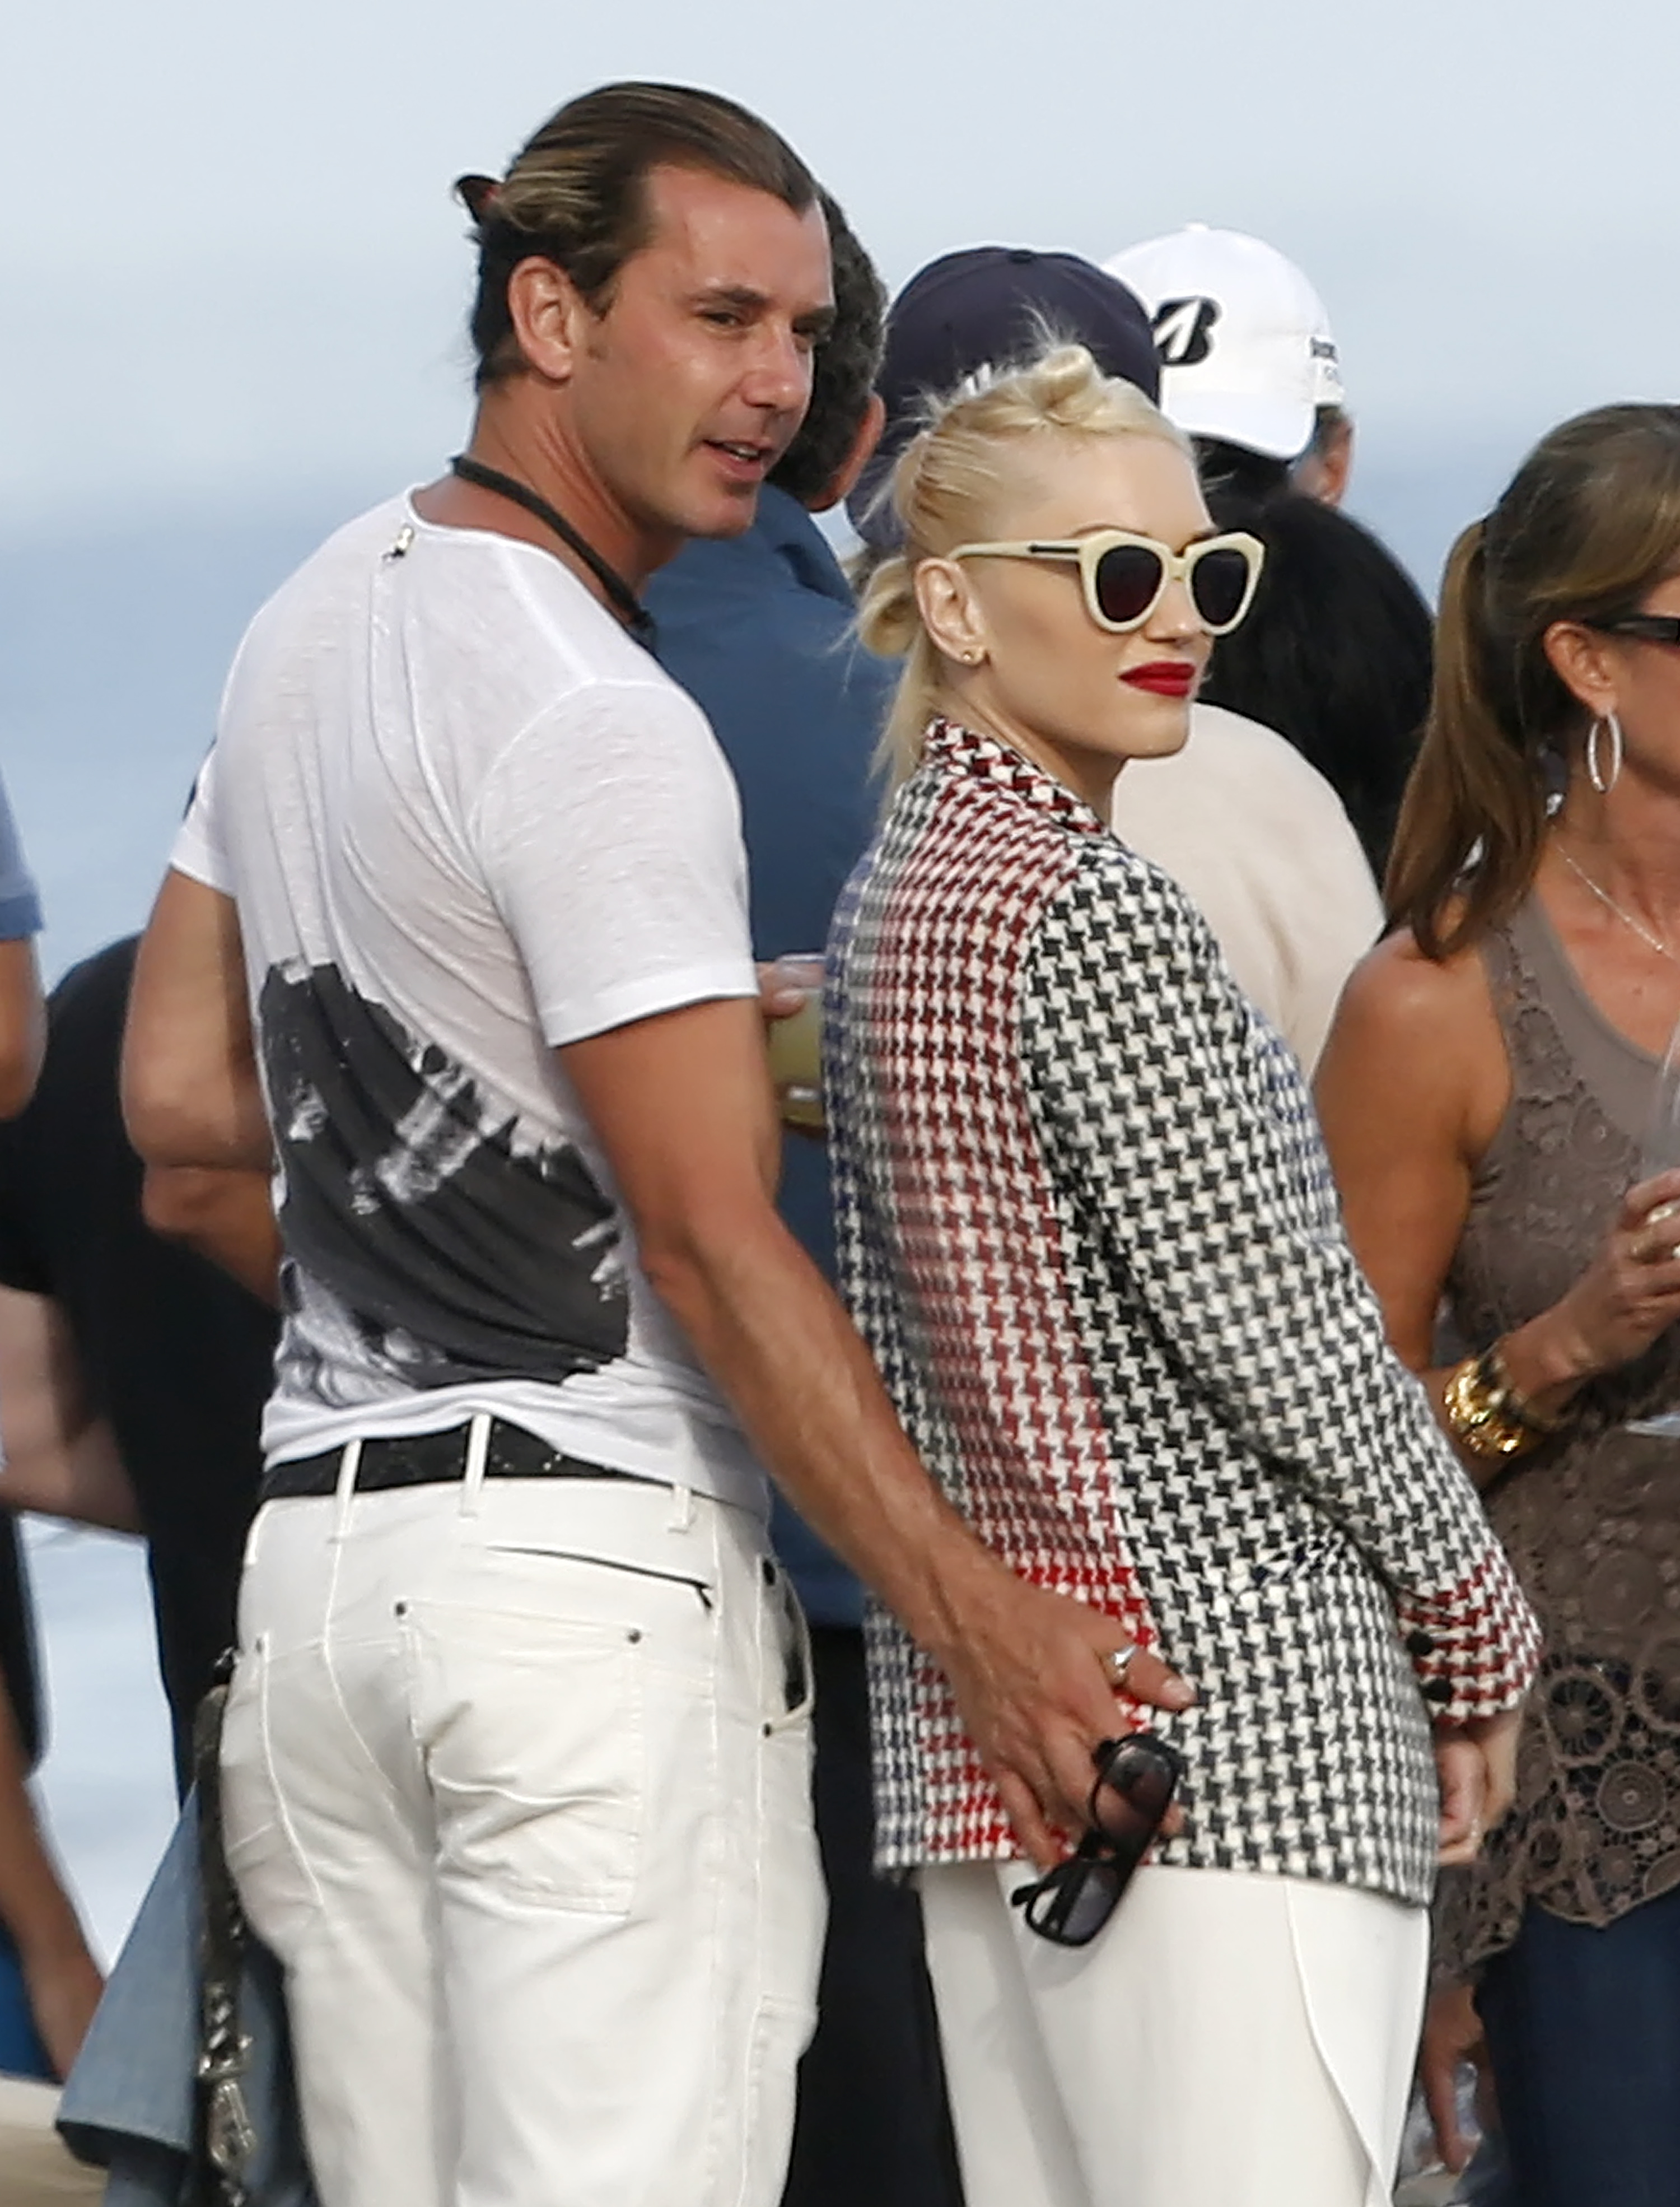 EXCLUSIVE: Gwen Stefani and husband Gavin Rossdale hanging out at a beach house party in Malibu, California. <P> Pictured: Gwen Stefani and Gavin Rossdale <P> <B>Ref: SPL551554  270513   EXCLUSIVE</B><BR/> Picture by: Splash News<BR/> </P><P> <B>Splash News and Pictures</B><BR/> Los Angeles:310-821-2666<BR/> New York:212-619-2666<BR/> London:870-934-2666<BR/> <span id=